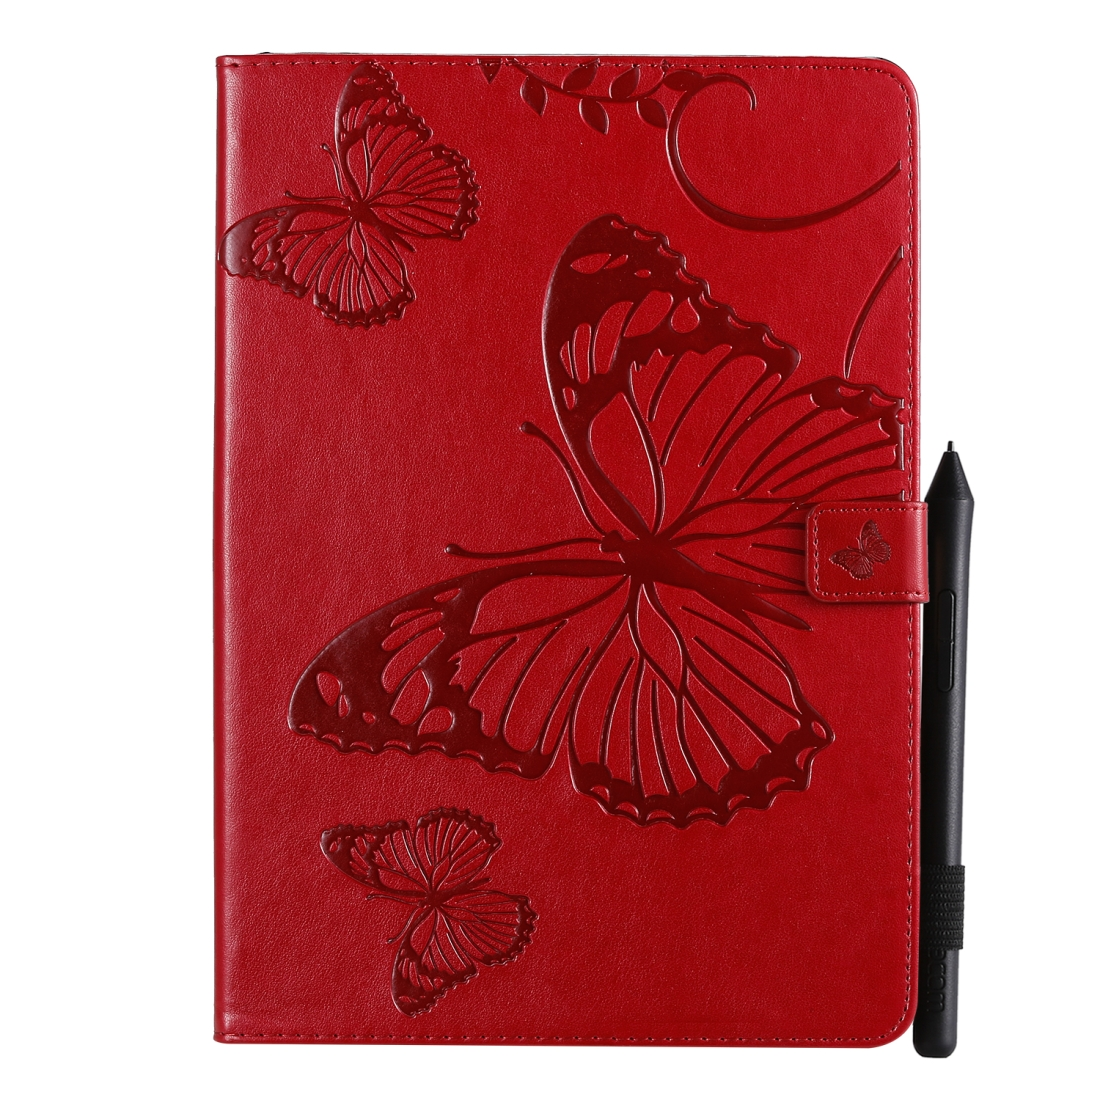 iPad 7th Generation Case (10.2 Inch) Also Fits /Pro 10.5/Air 2019 Leather Butterfly Design (Red)